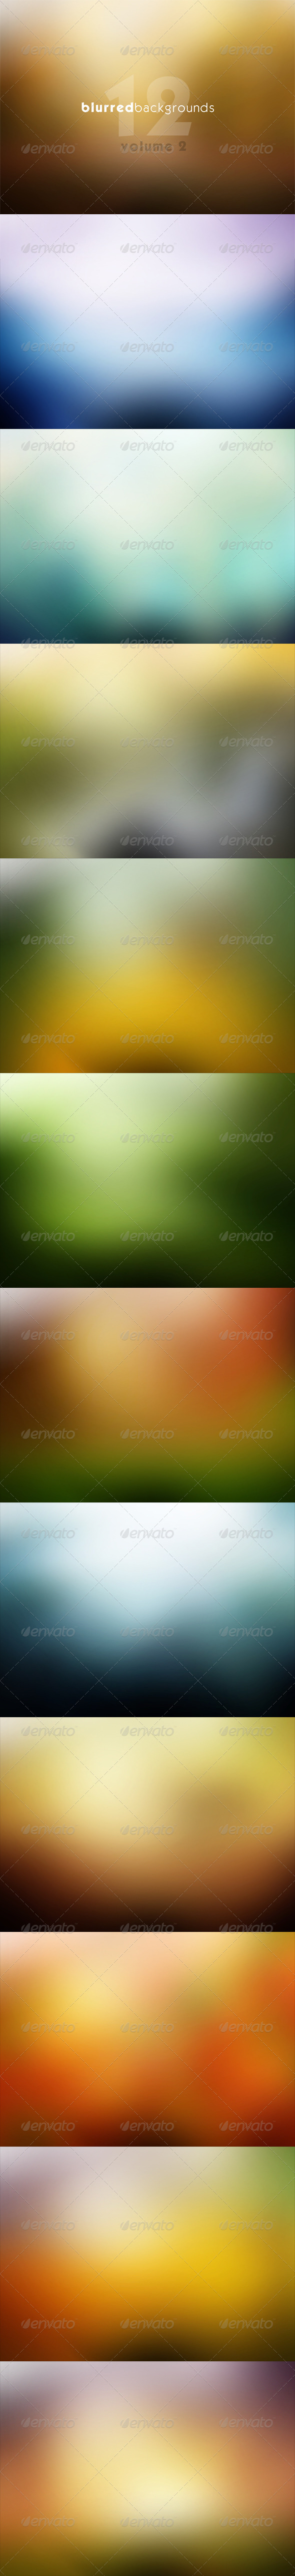 GraphicRiver Blurred Backgrounds Vol 2 7346610